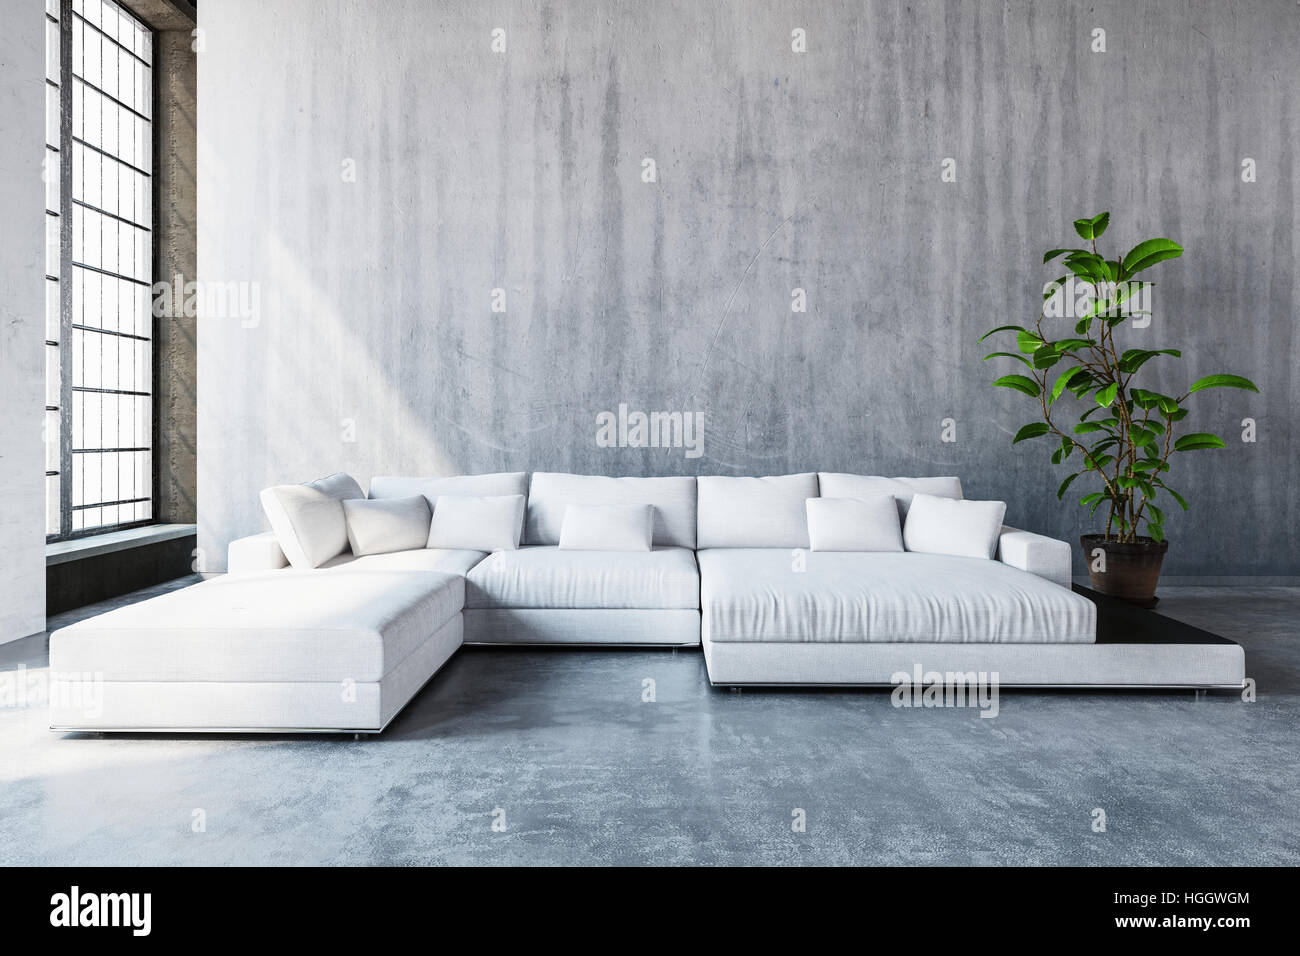 Stock Photo   Stylish Modern White Modular Sofa Day Bed With Cushions In A  Spacious Living Room With Tall Windows And Monochrome Grey Decor, 3d Render